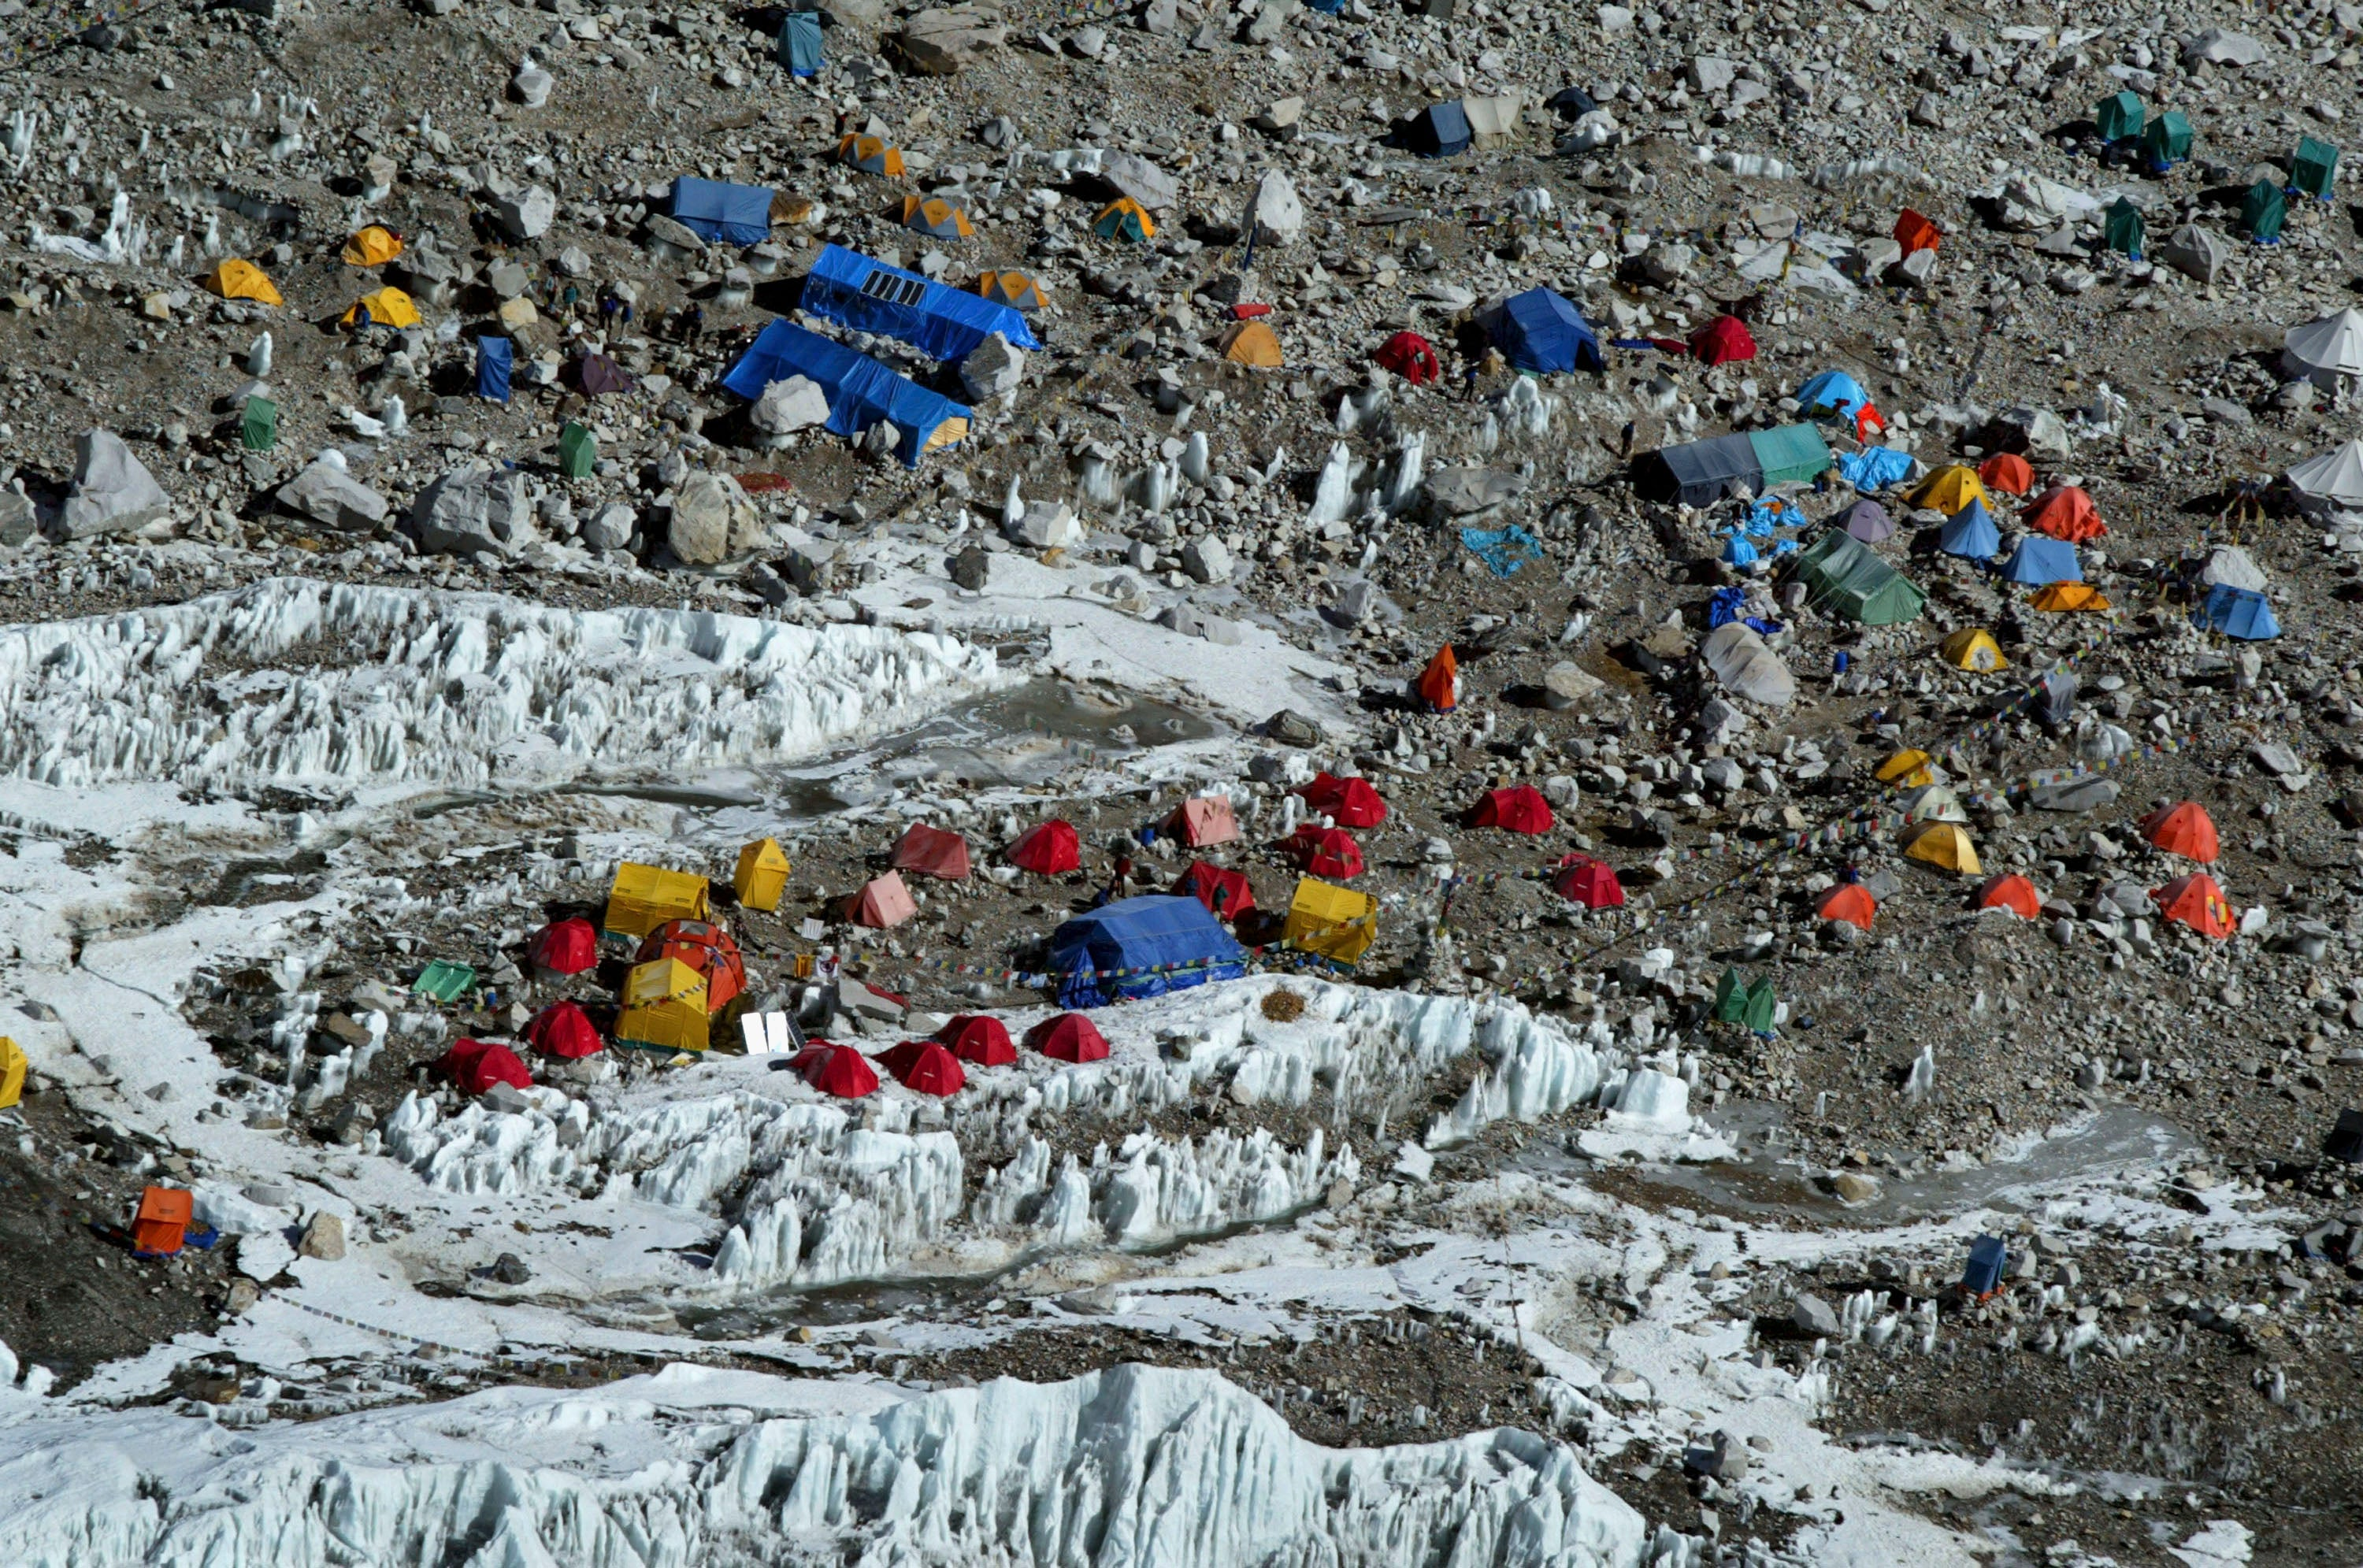 Nepal Will Force Each Everest Climber To Collect 18 Pounds of Trash